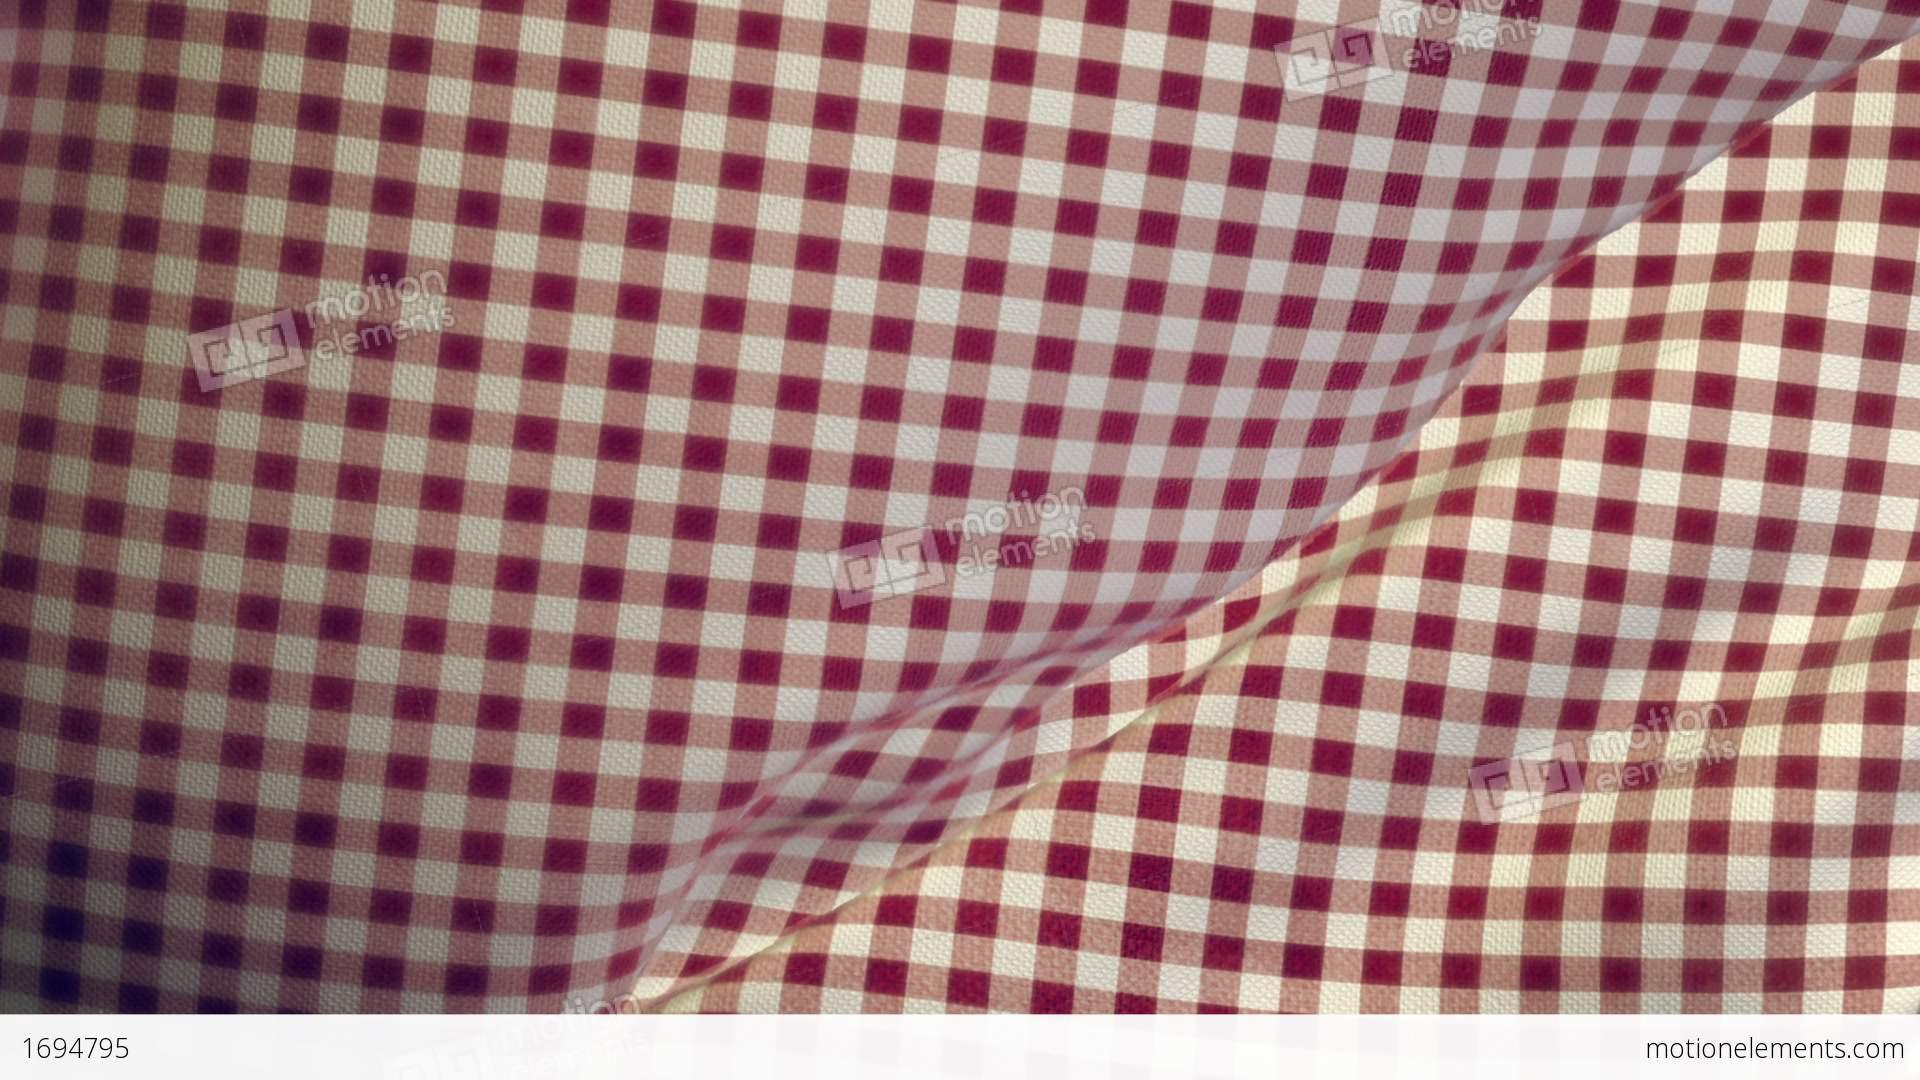 Ordinaire Kitchen Table Cloth Falling Onto Flat Surface Transition Stock Video Footage